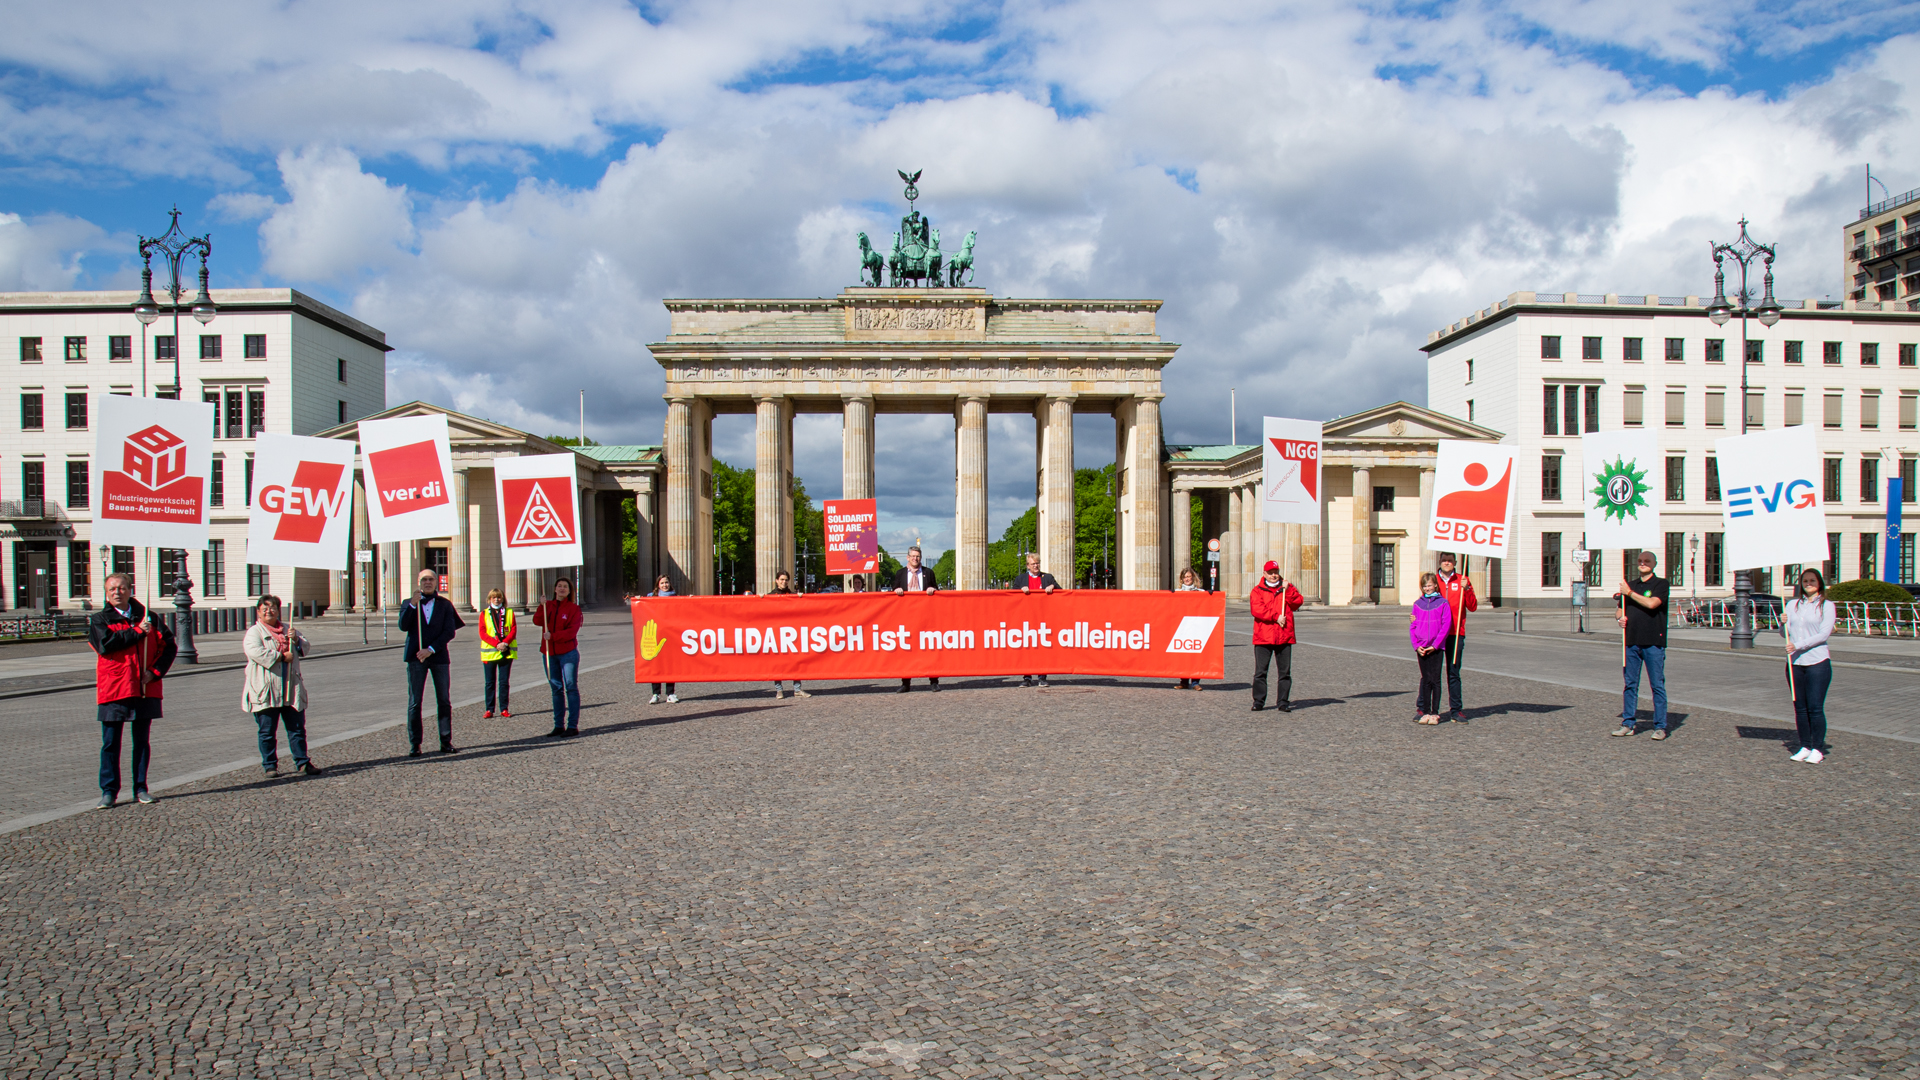 randenburger Tor in Berlin am 1. Mai 2020